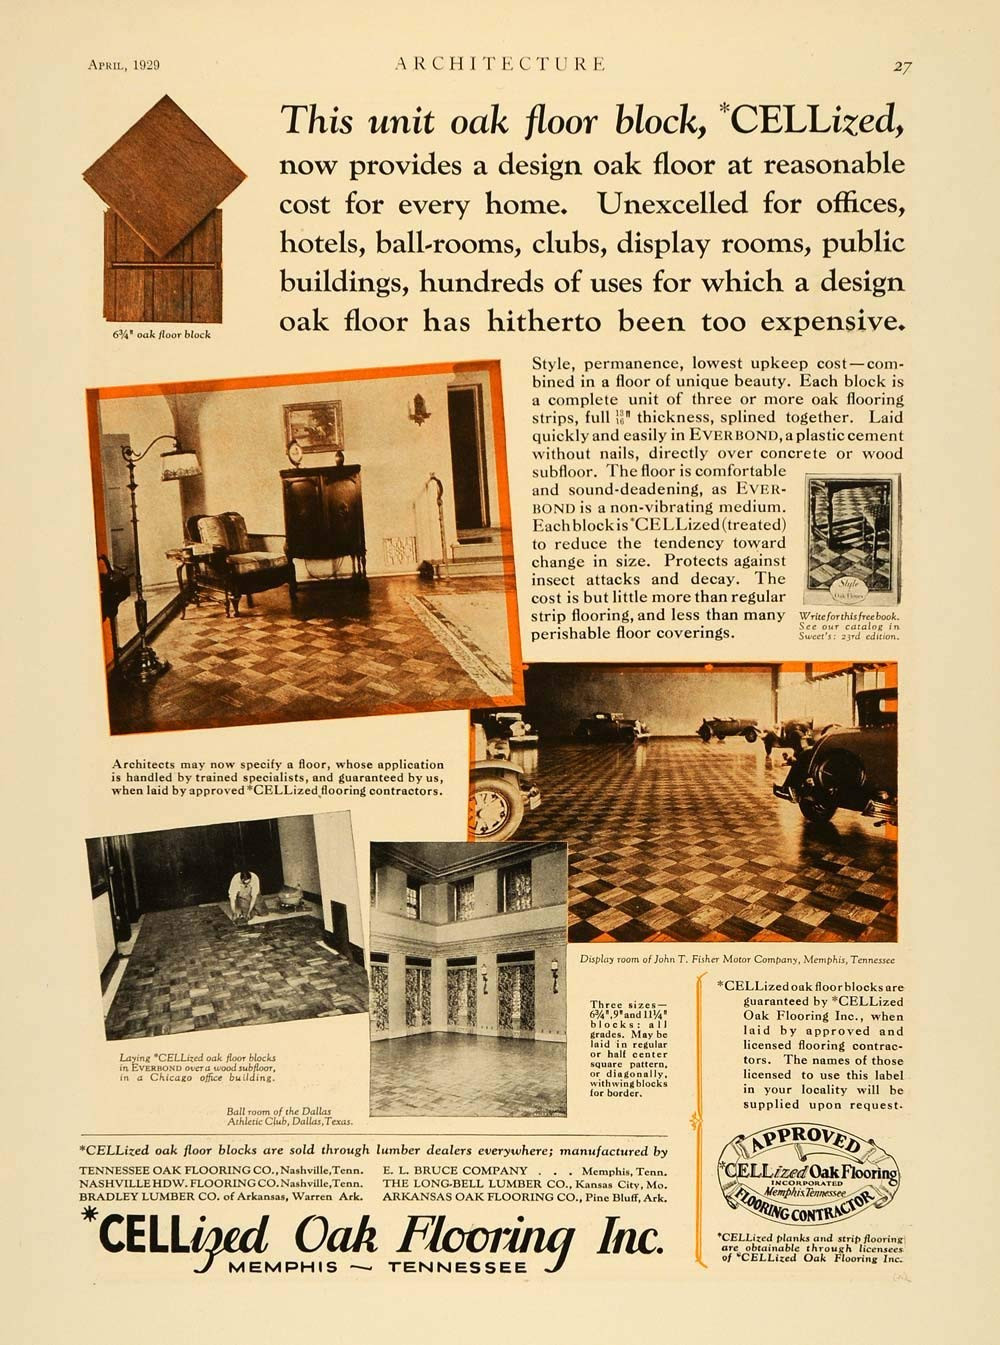 Cheap Hardwood Flooring In Dallas Tx Of Amazon Com 1929 Ad Cellized Oak Wood Flooring Home Improvement with Regard to Amazon Com 1929 Ad Cellized Oak Wood Flooring Home Improvement Dallas athletic Club Floors original Print Ad Entertainment Collectibles